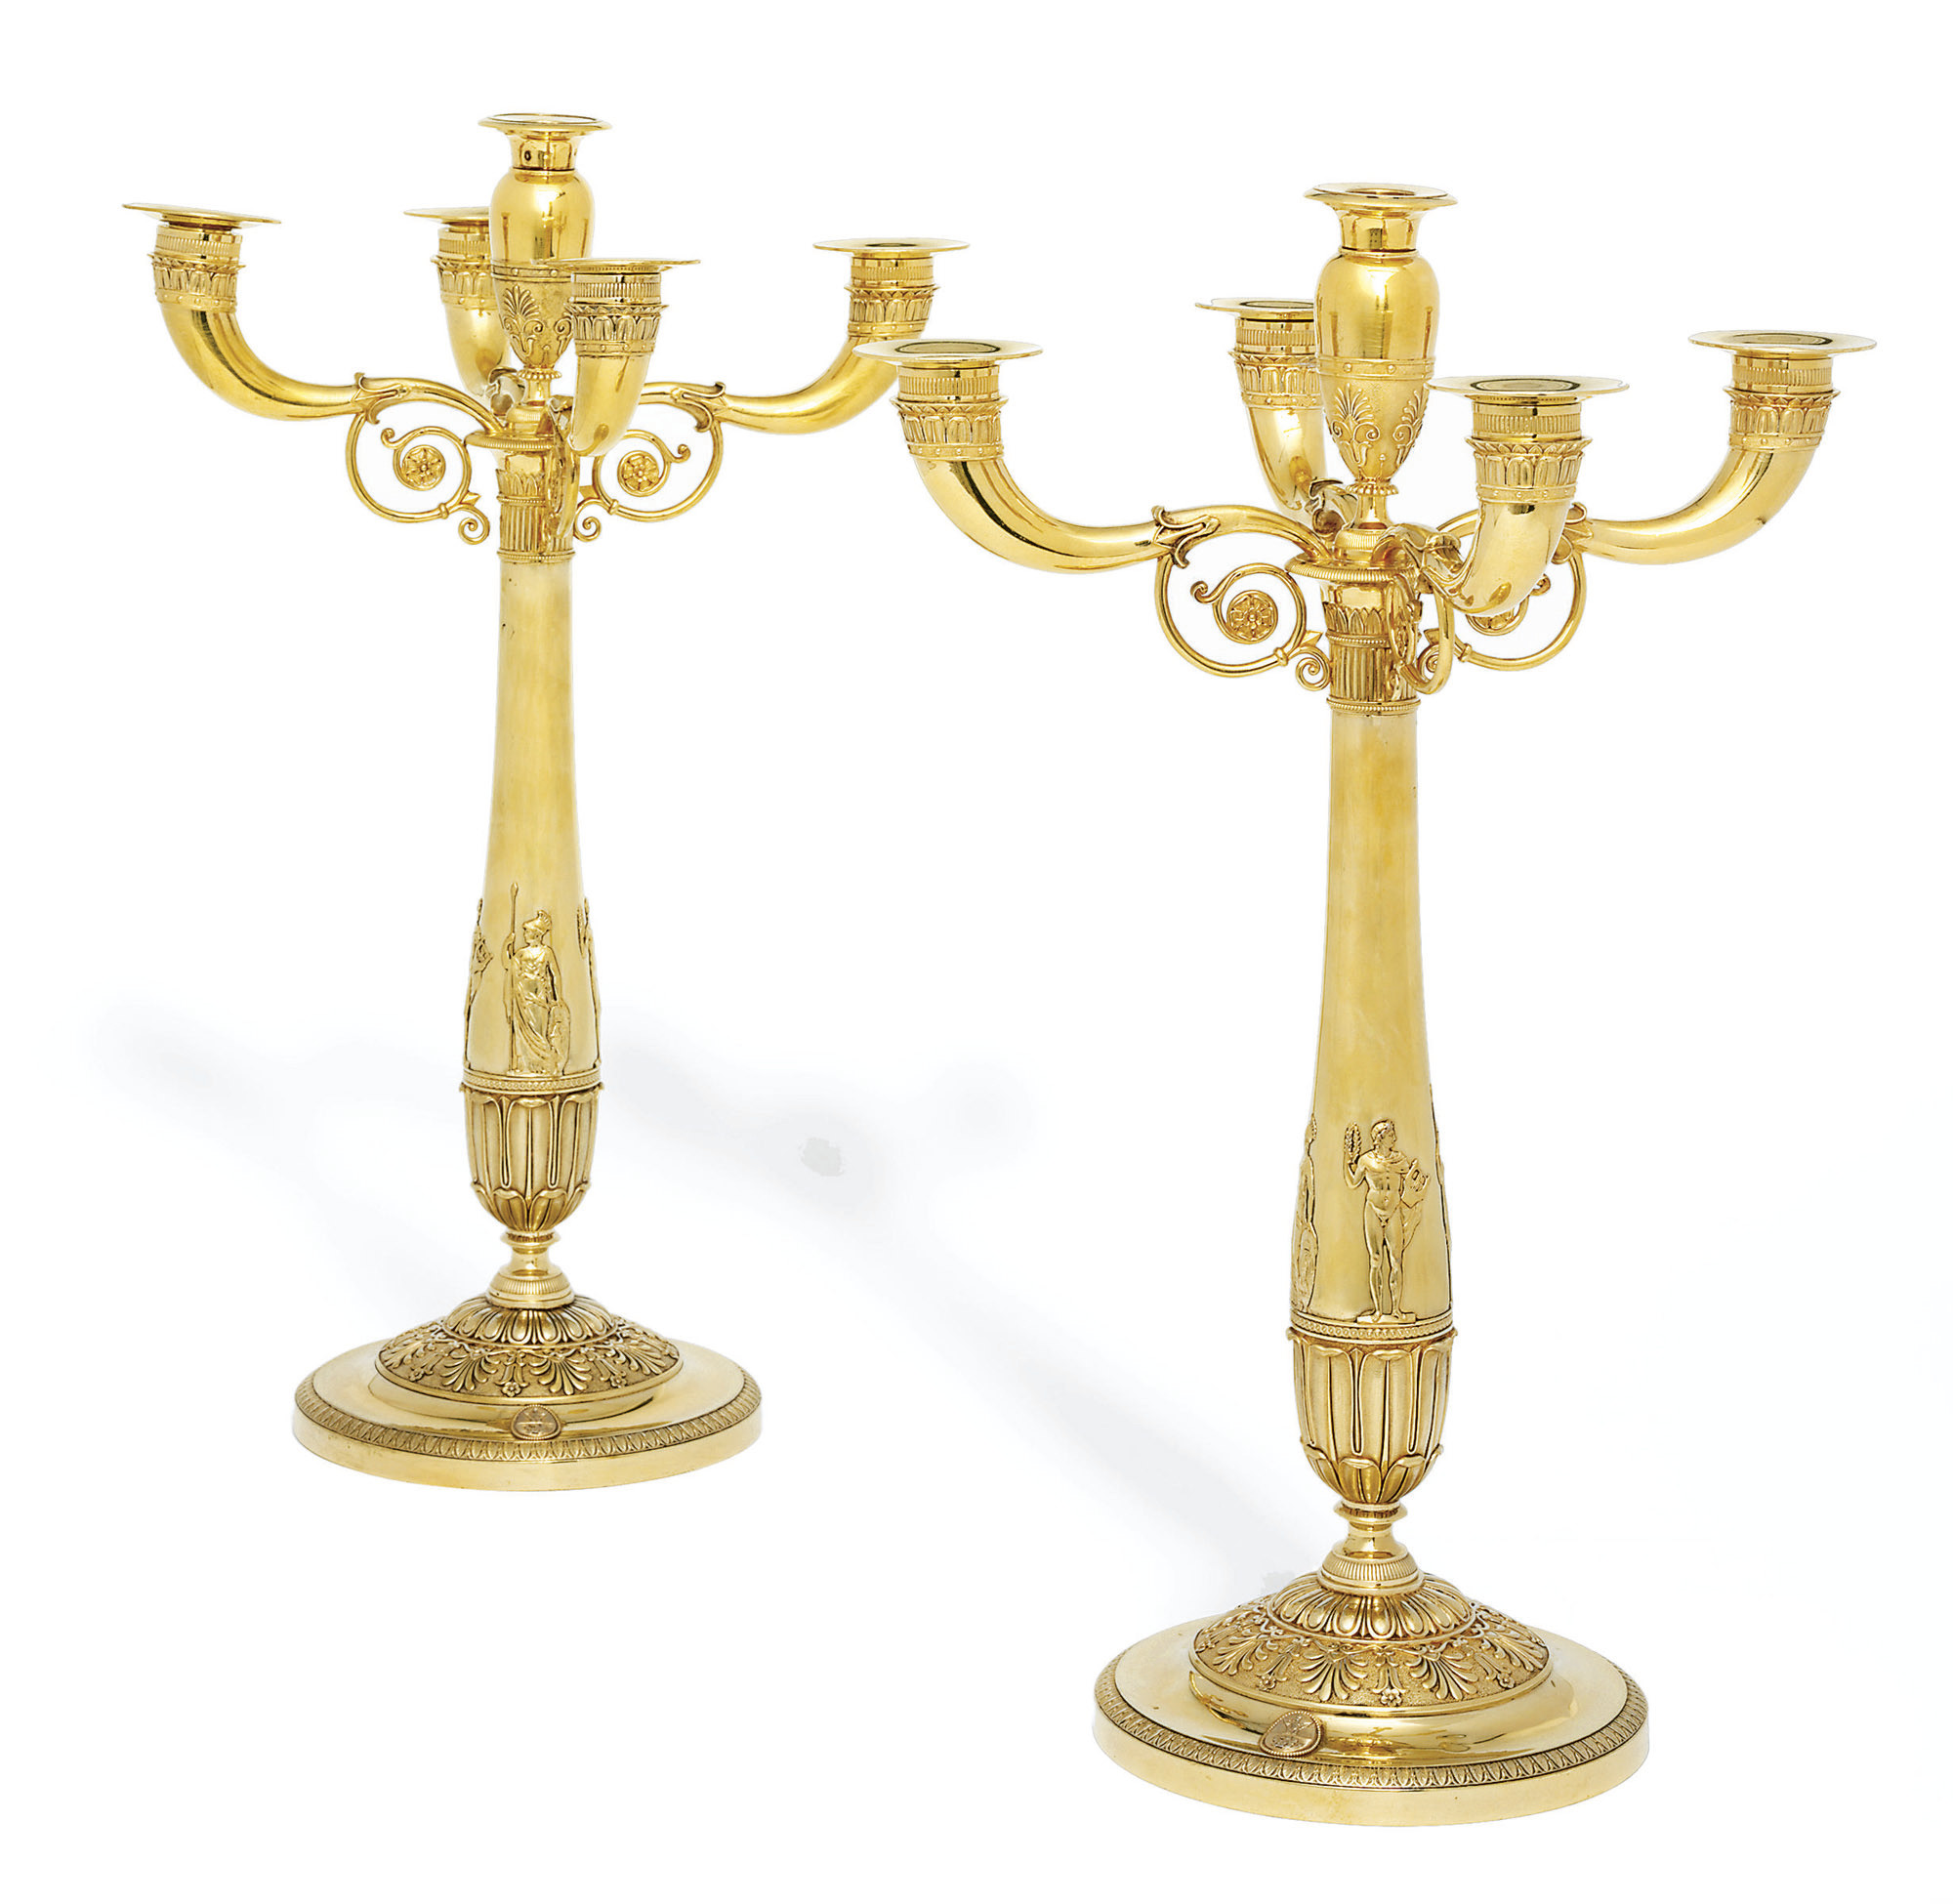 A PAIR OF FRENCH EMPIRE SILVER-GILT FIVE-LIGHT CANDLEABRA FROM THE BORGHESE SERVICE